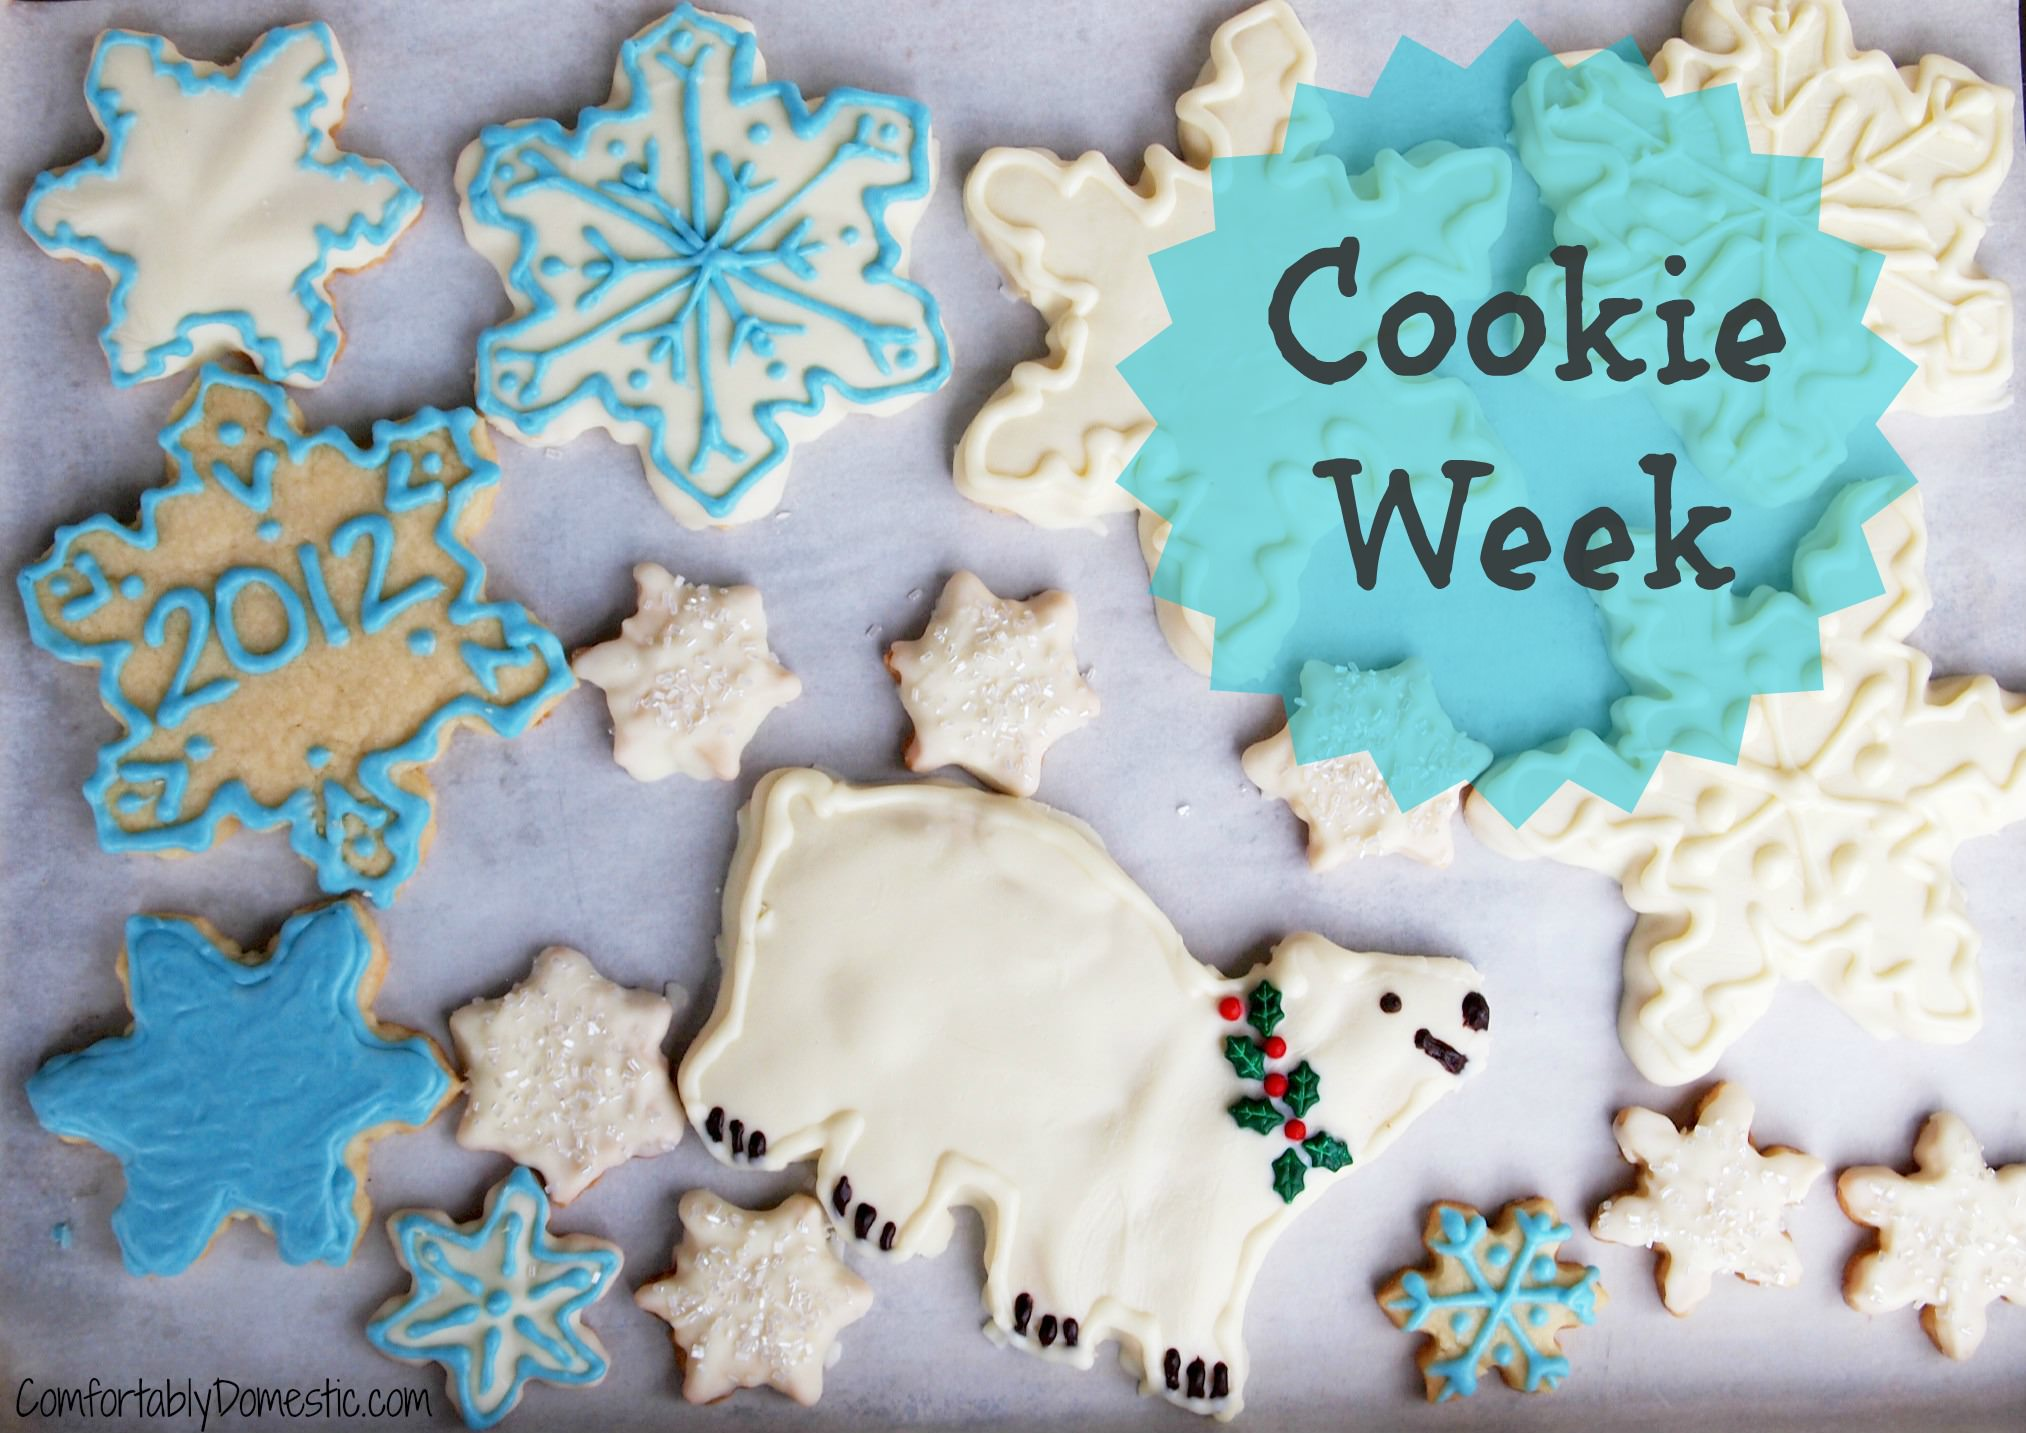 Look here for the delicious and easy cookie recipes being shared for the 4th day of Cookie Week 2012! Colossal cookies and sesame plum thumbprint cookies!